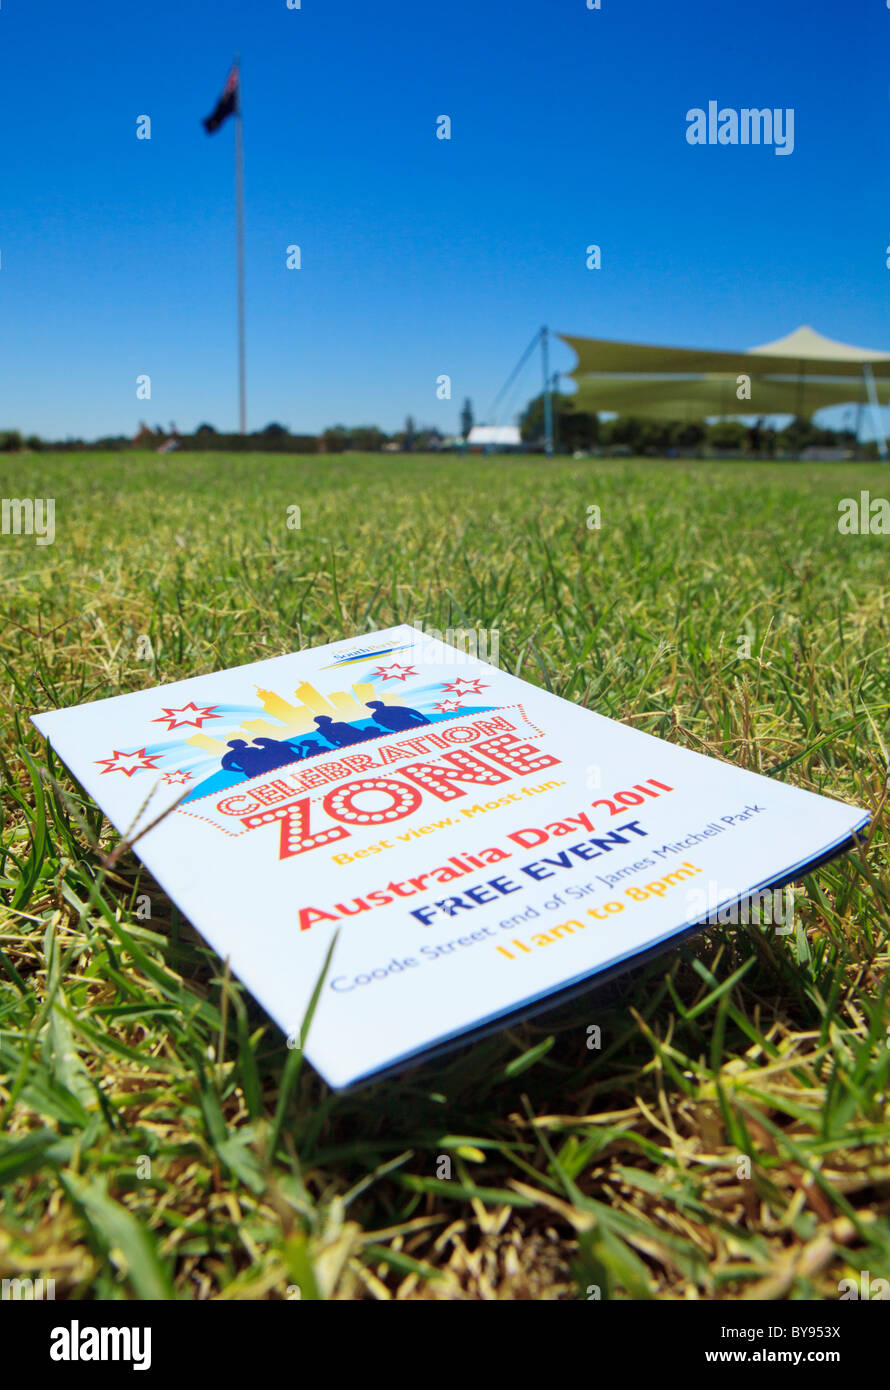 Australia Day celebrations booklet with the Australian flag in the distance - Stock Image